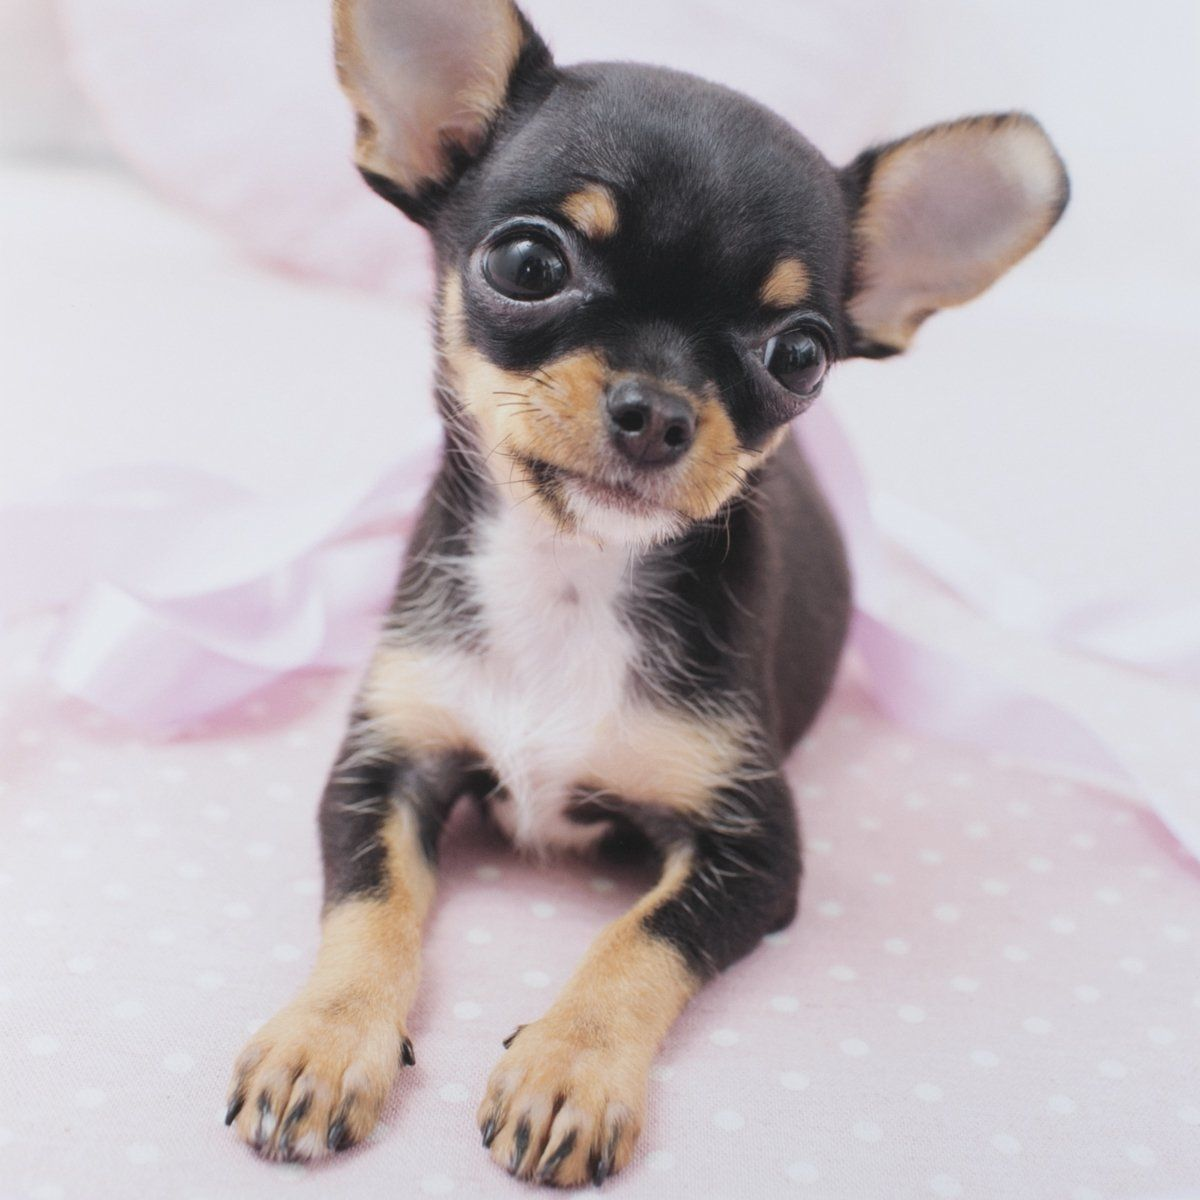 Chihuahua Puppies Are Small Sized And Have A Variety Of Coats And